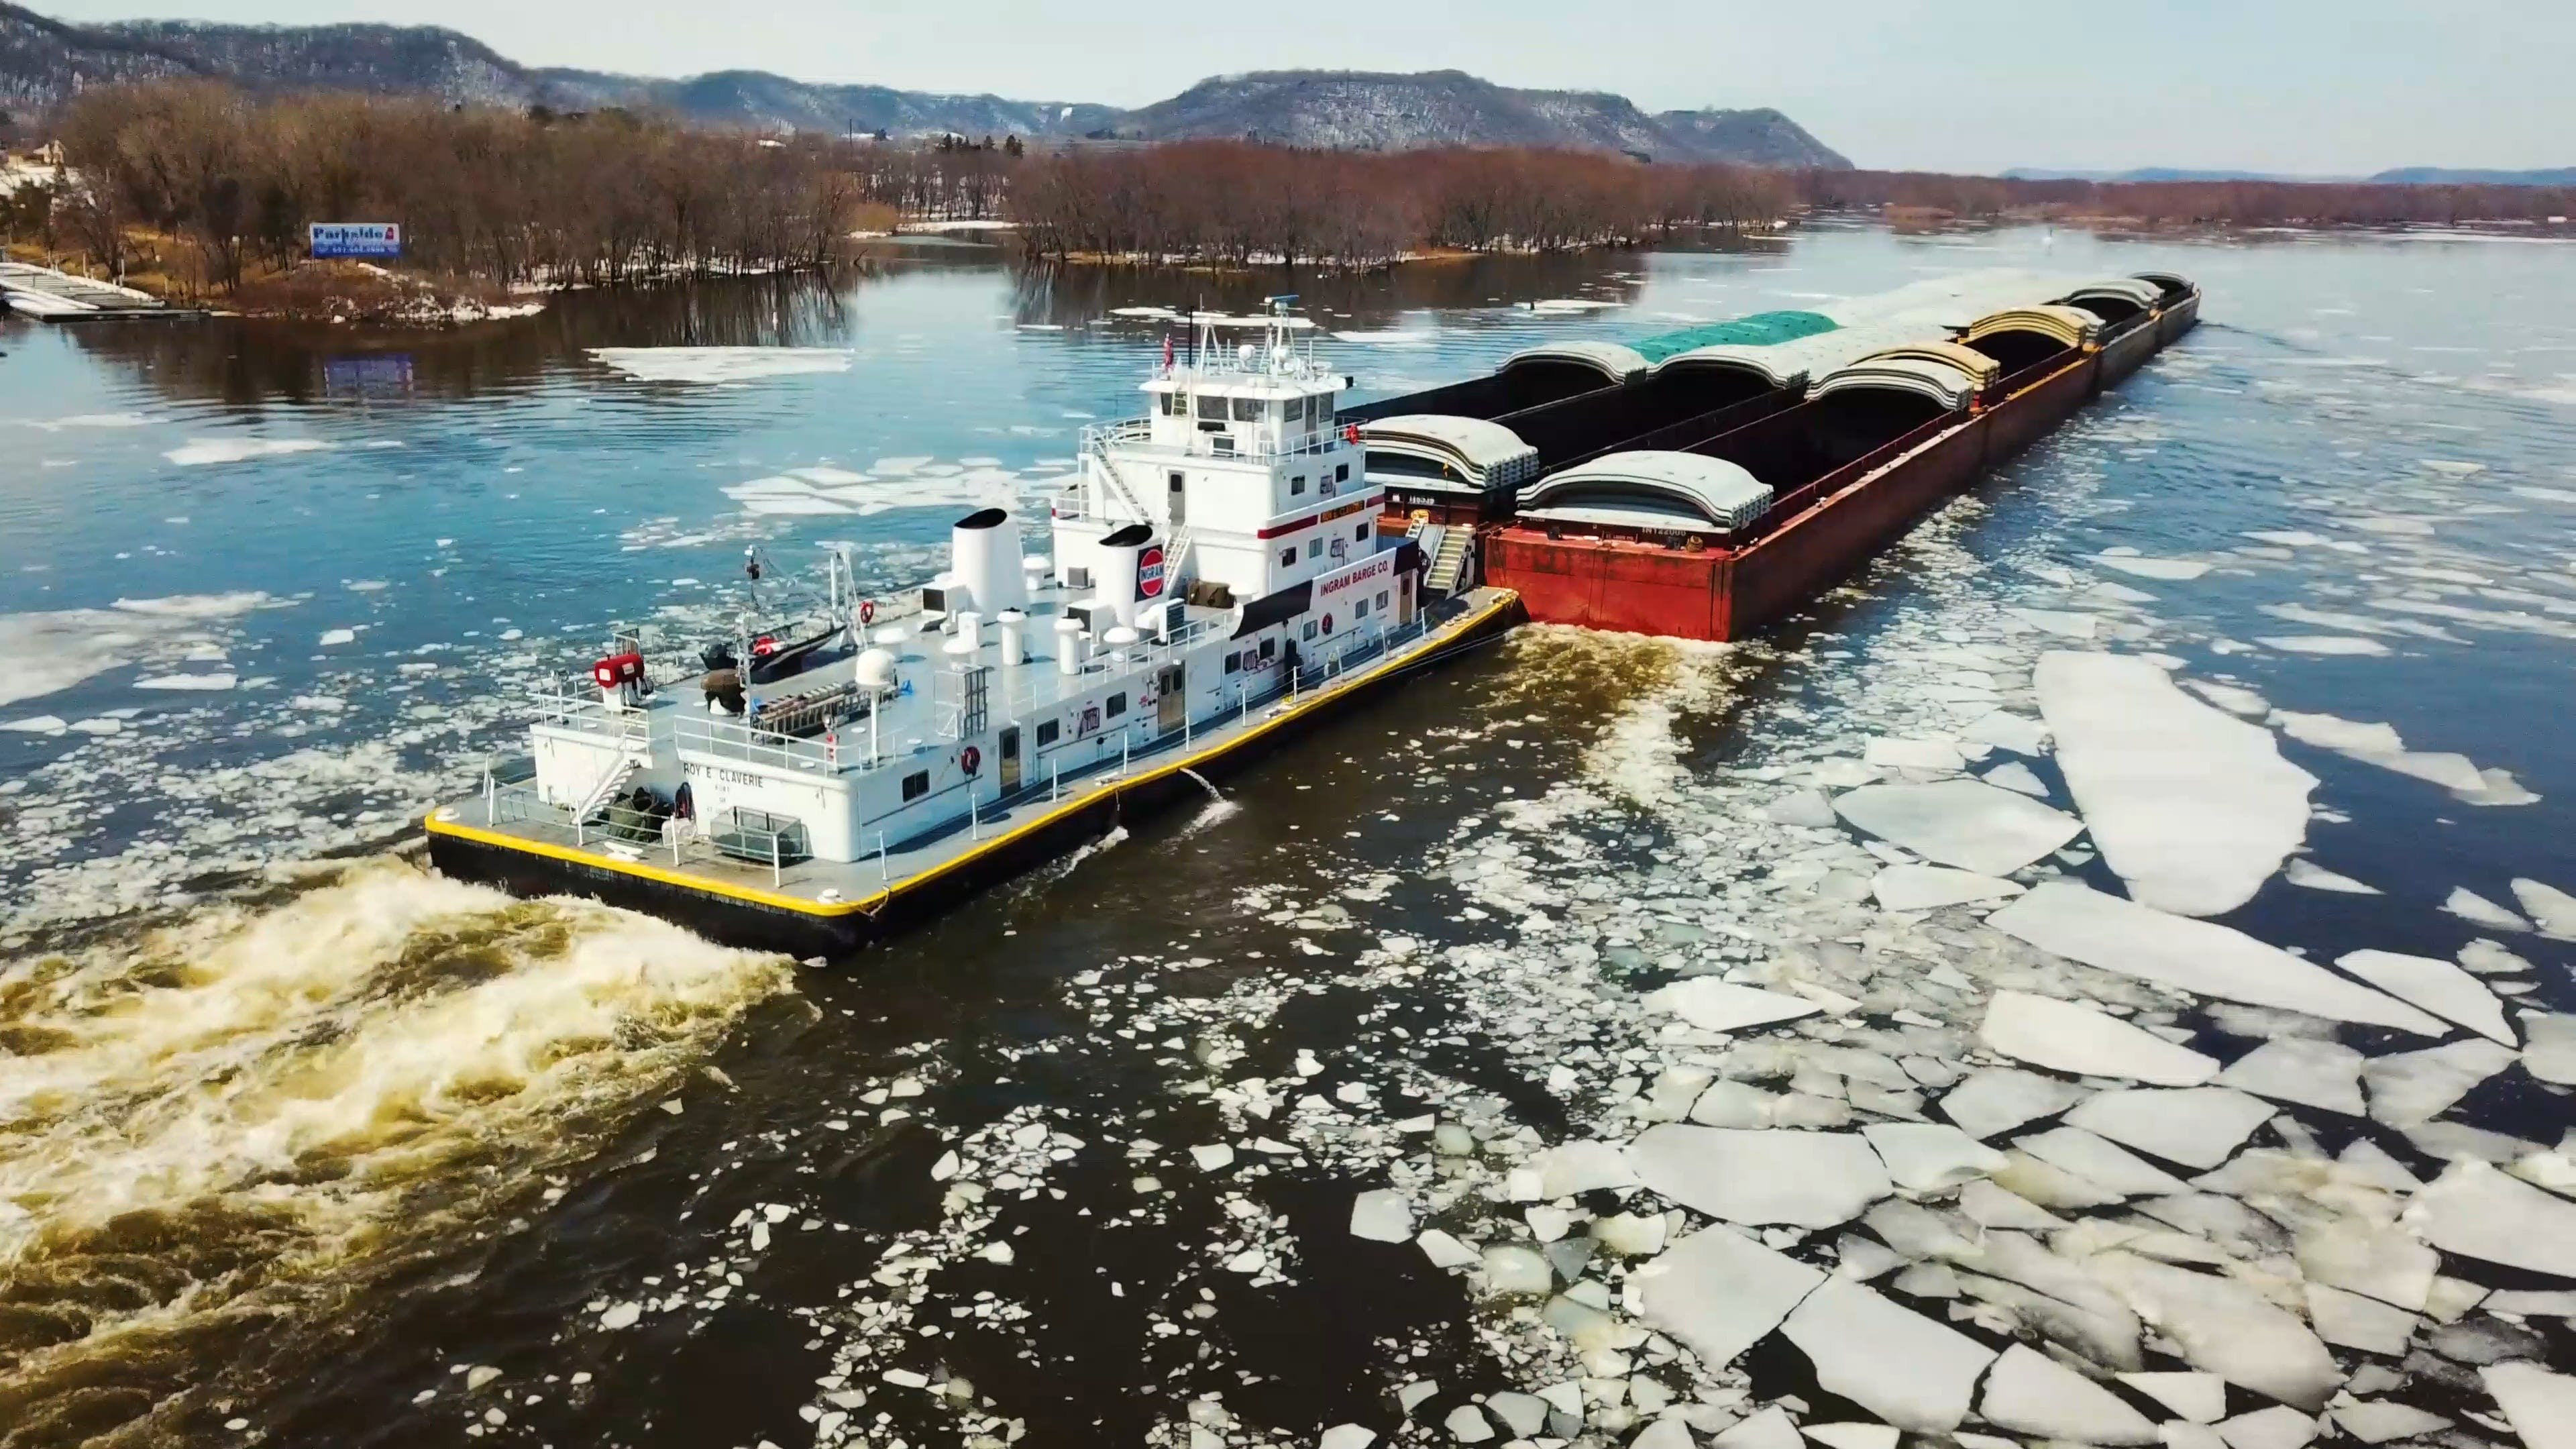 A Barge Sailing The River With Icebergs